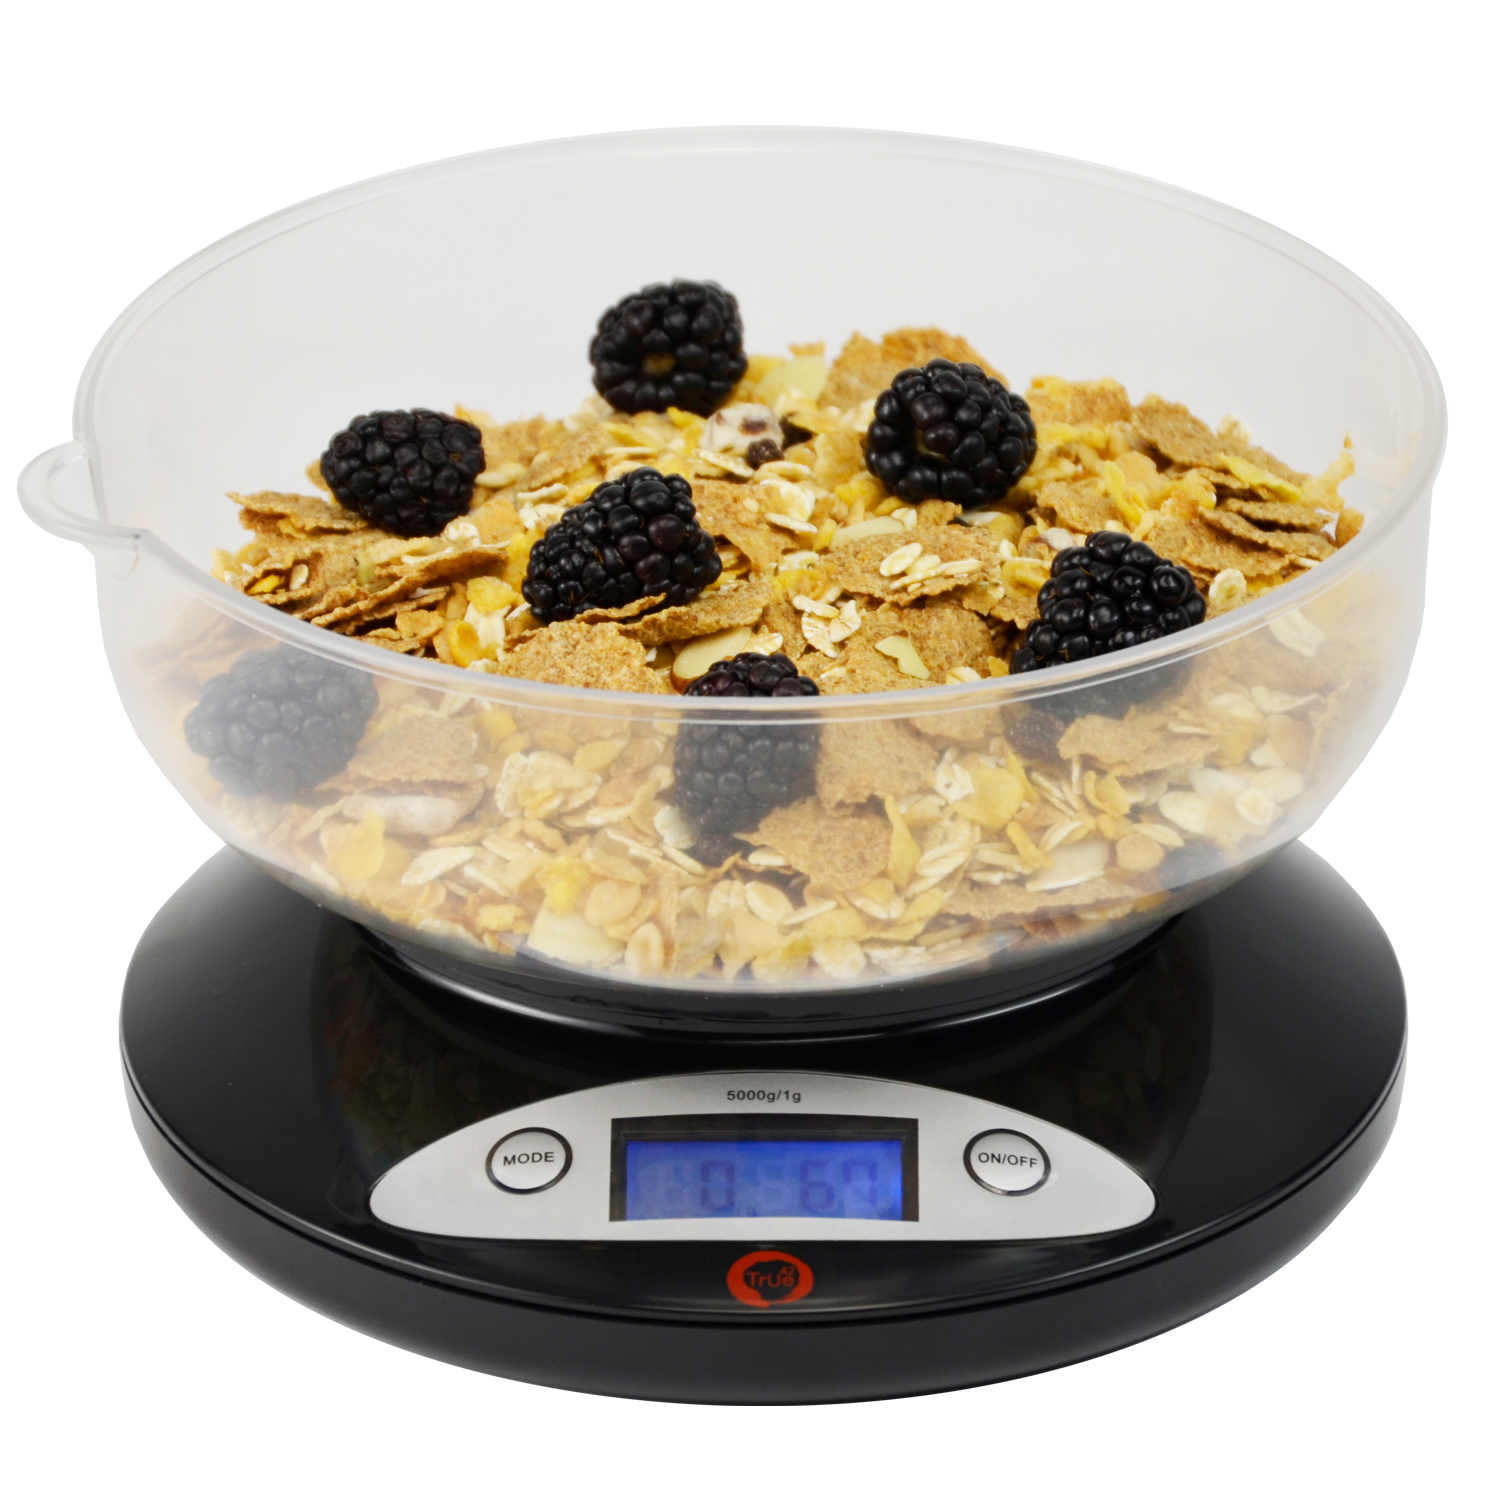 Kitchen scale - Ultimate 5k digital kitchen food scale and multifunction  weight scale with removable bowl grams and ounces , 5000g 1.0g